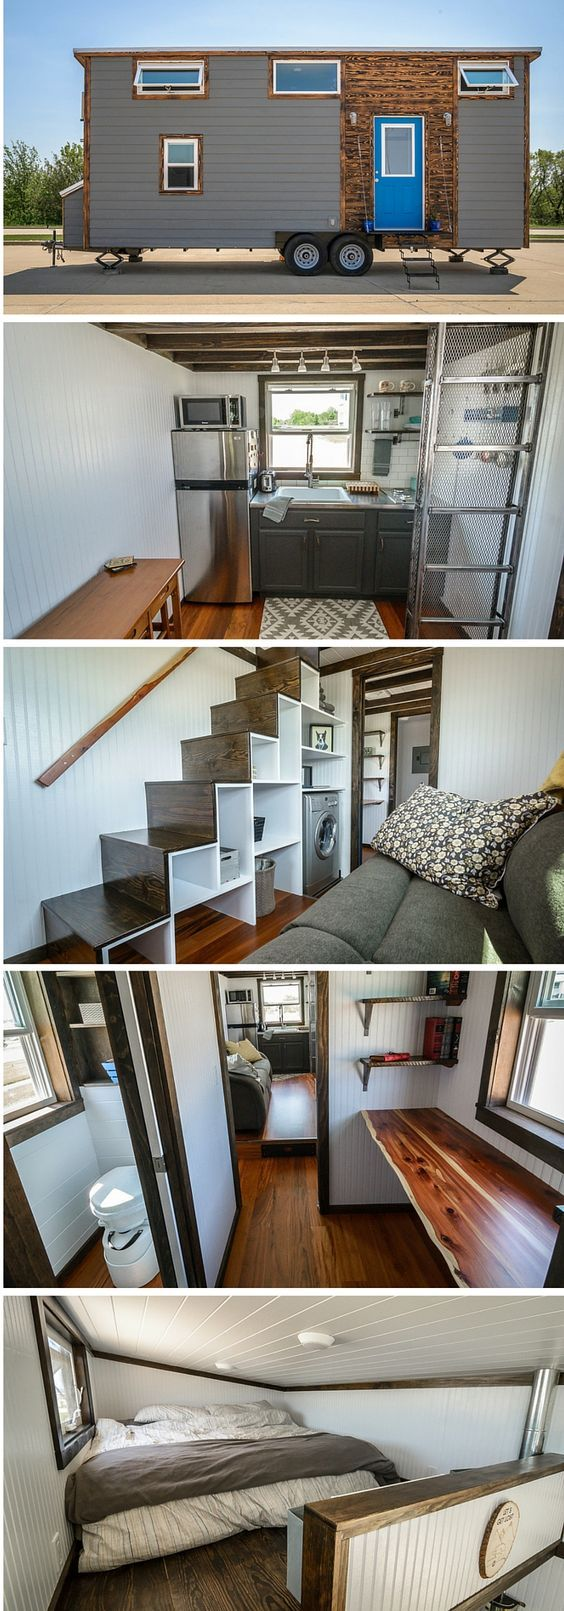 Best 25+ Tiny home office ideas on Pinterest | Tiny office, Window desk and  Desk nook